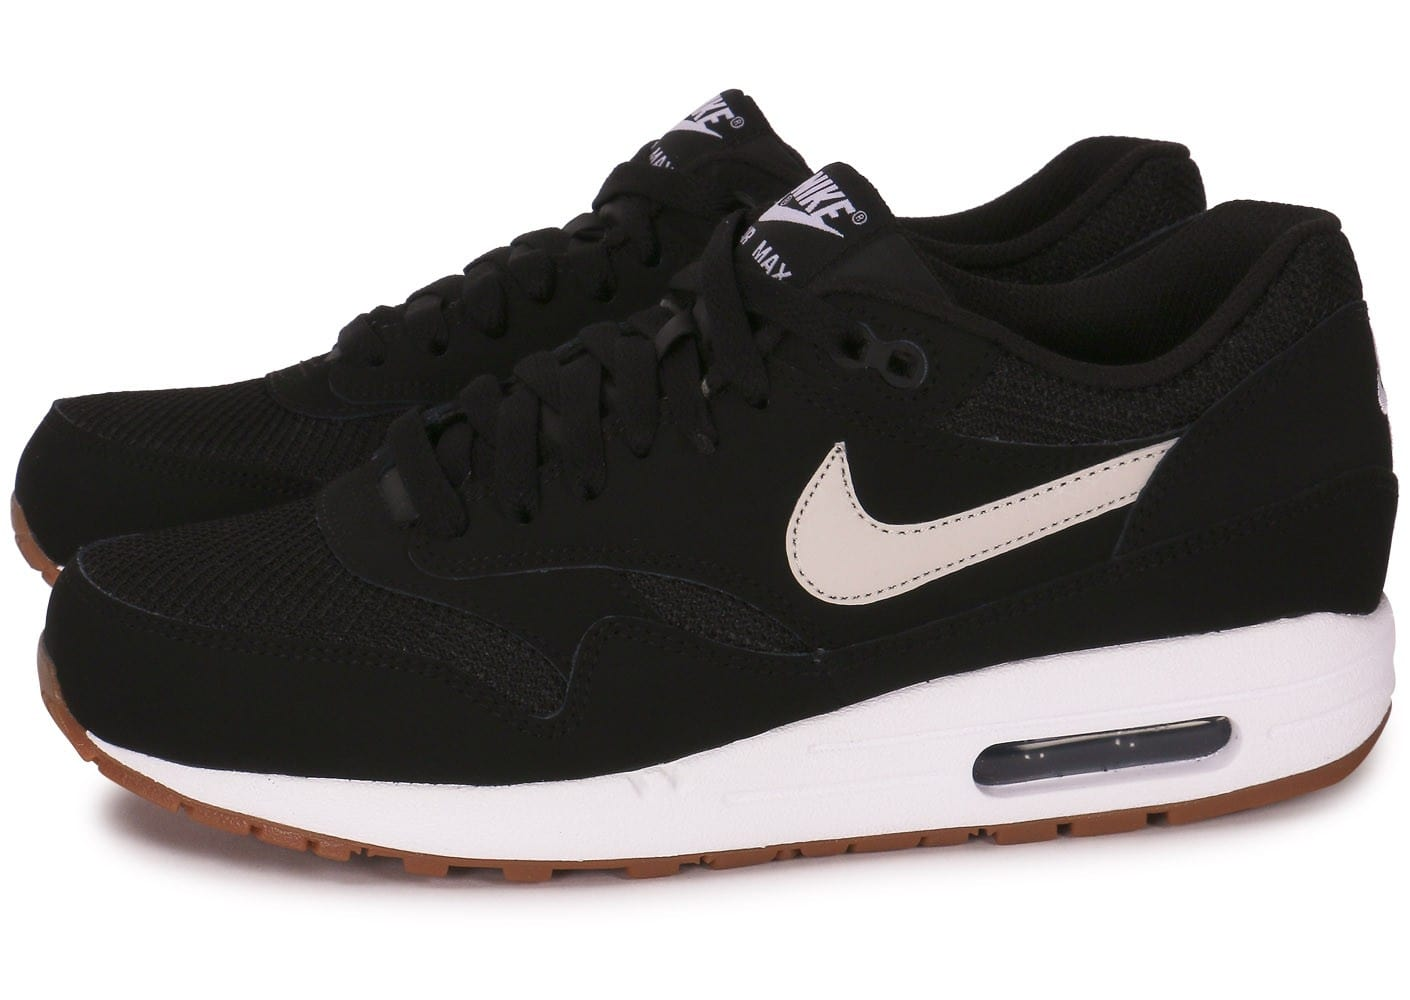 Nike Air Max 1 Essential Black Gum Chaussures Baskets